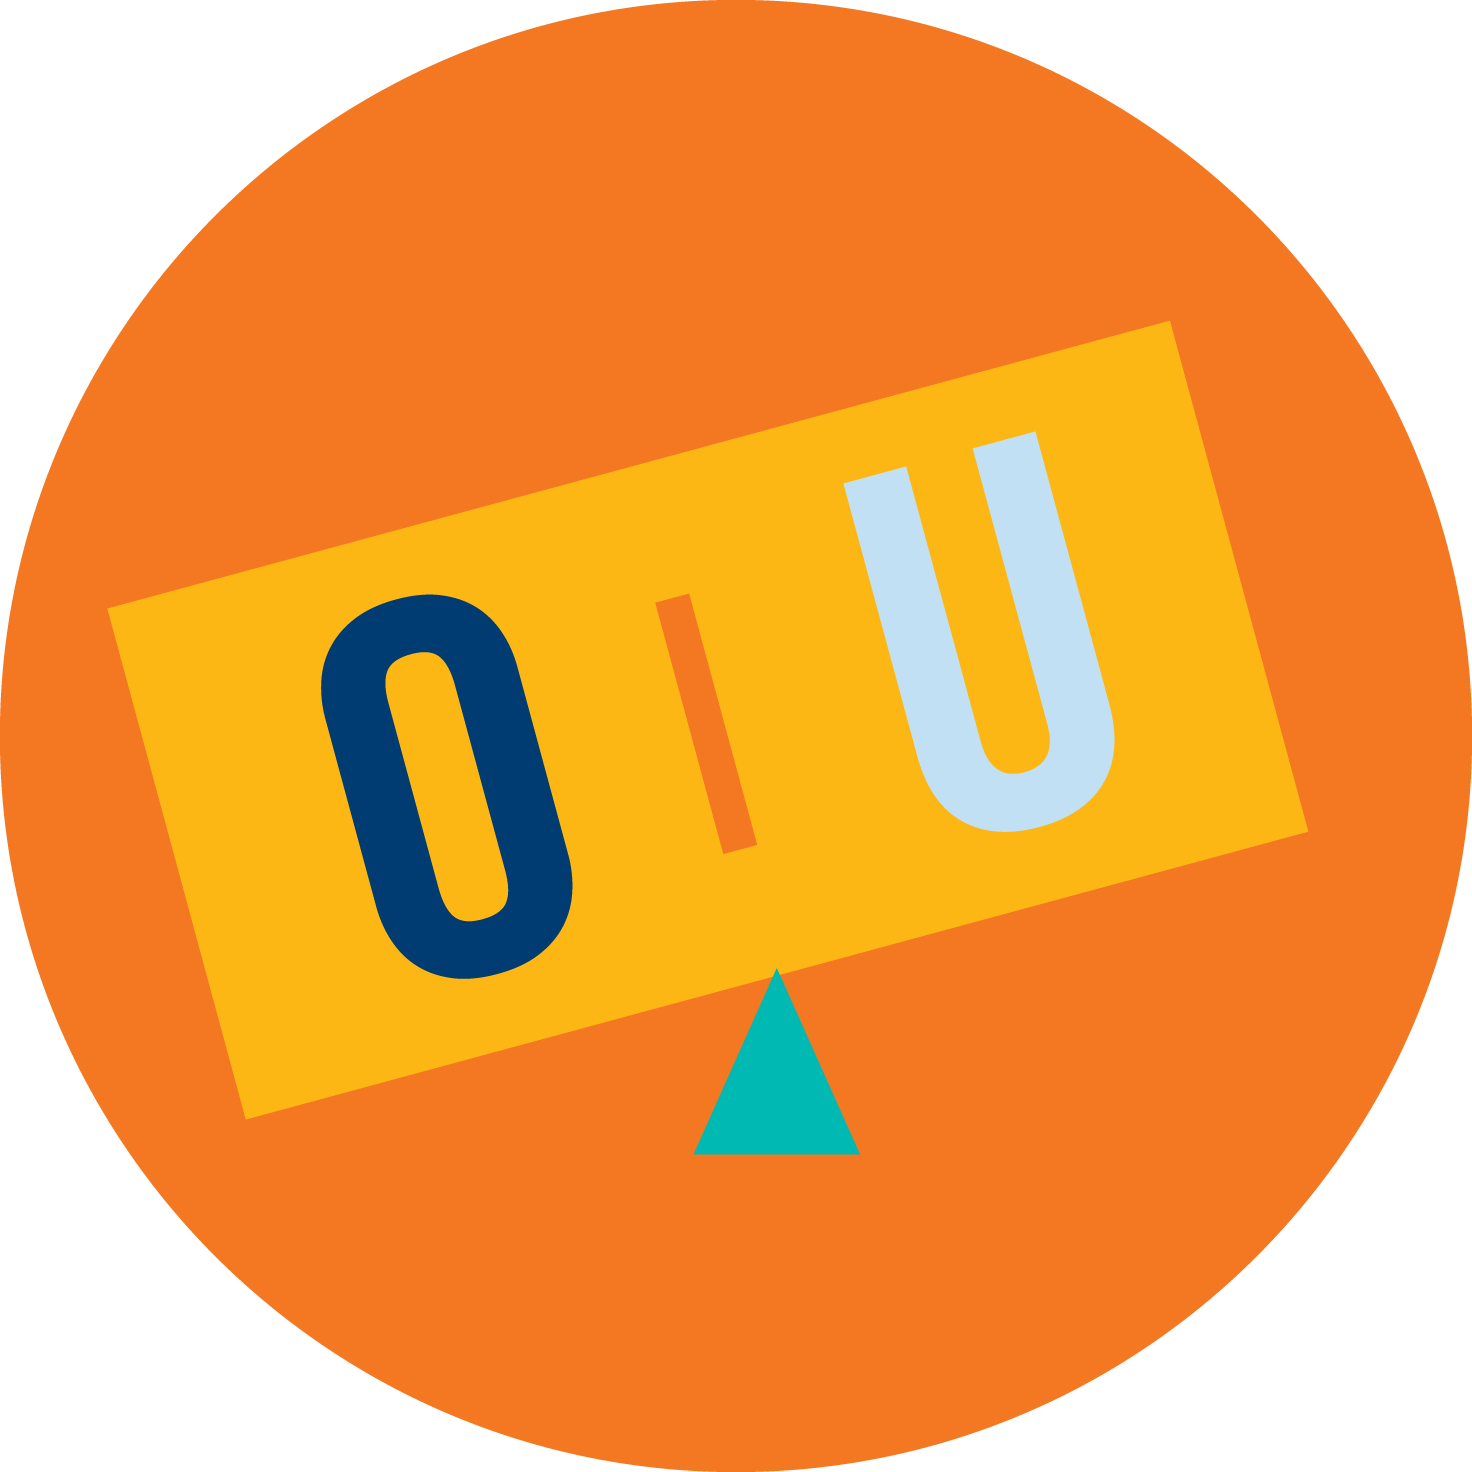 A balancing scale is shown with an 'O' outweighing the 'U'.